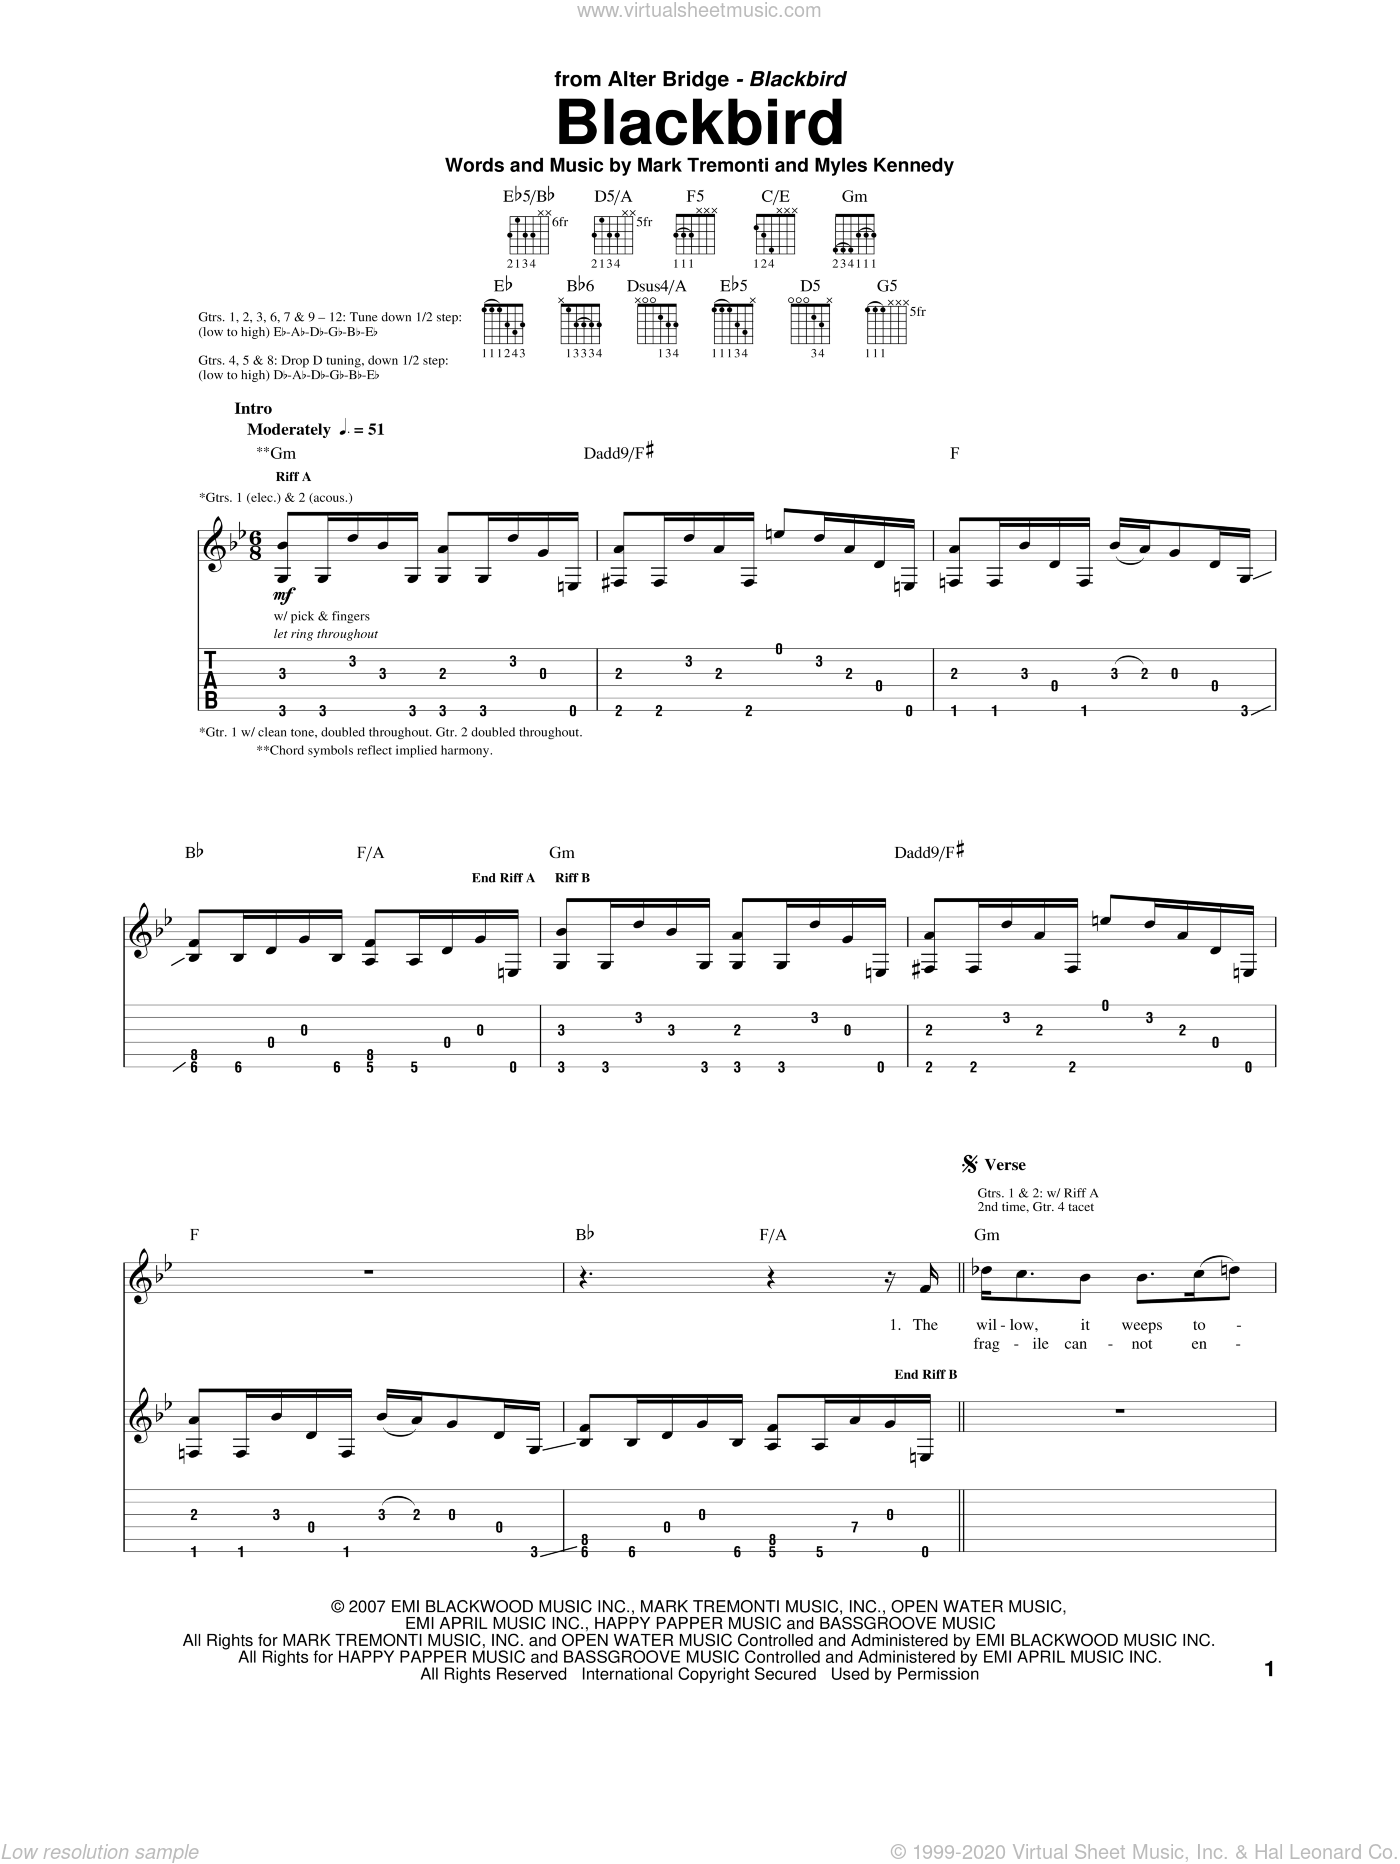 Blackbird sheet music for guitar (tablature) by Alter Bridge, Mark Tremonti and Myles Kennedy, intermediate skill level